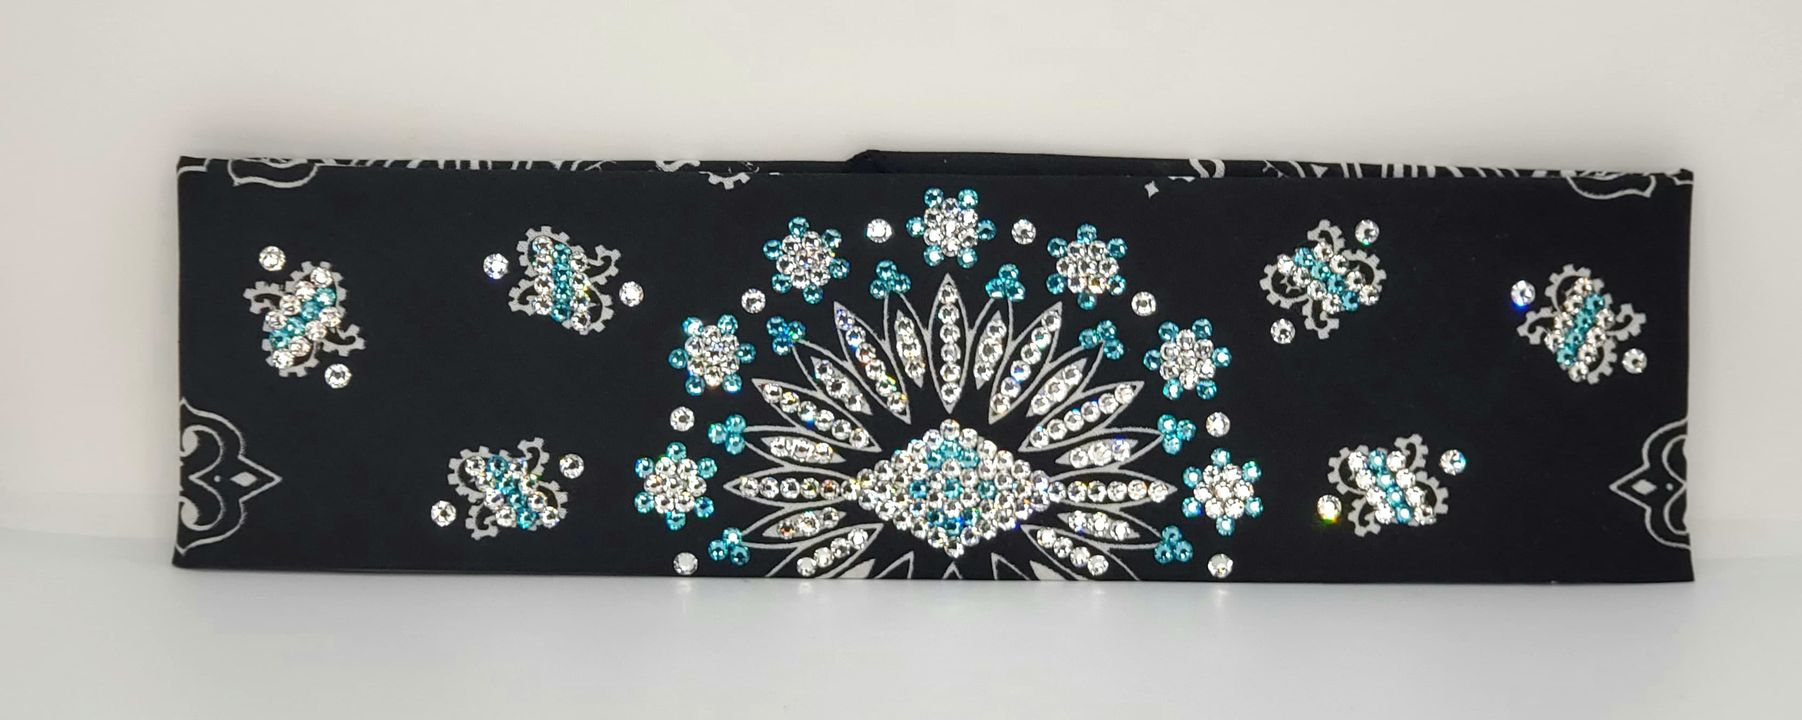 LeeAnnette Black Paisley with Turquoise and Diamond Clear Swarovski Crystals (Sku4560)